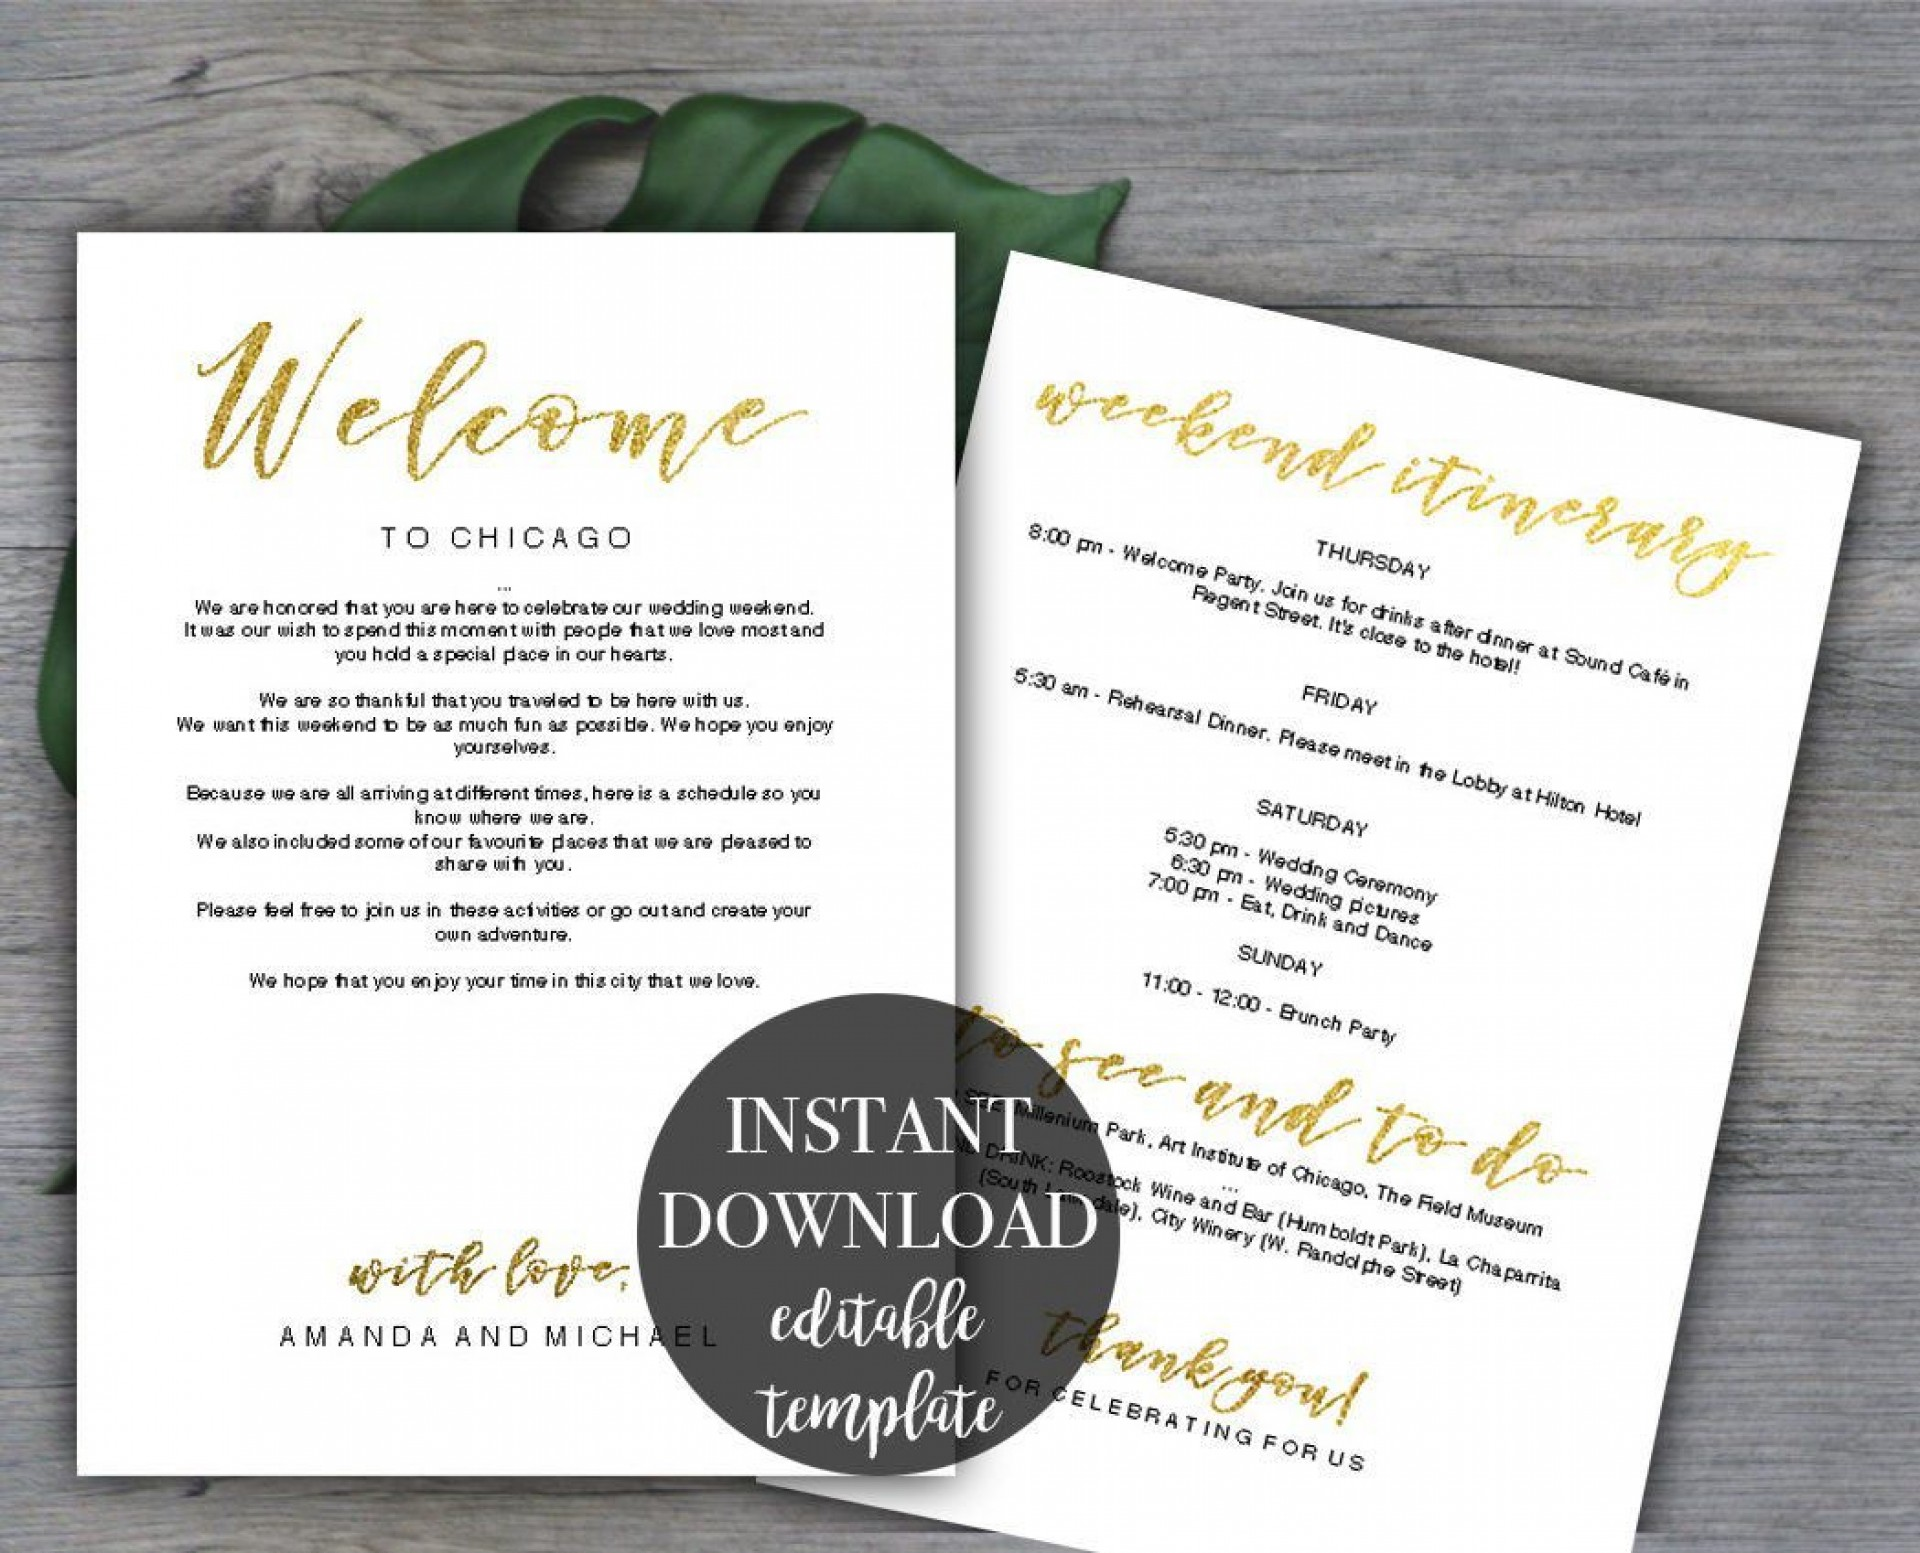 006 Beautiful Destination Wedding Welcome Letter Template Sample  And Itinerary1920